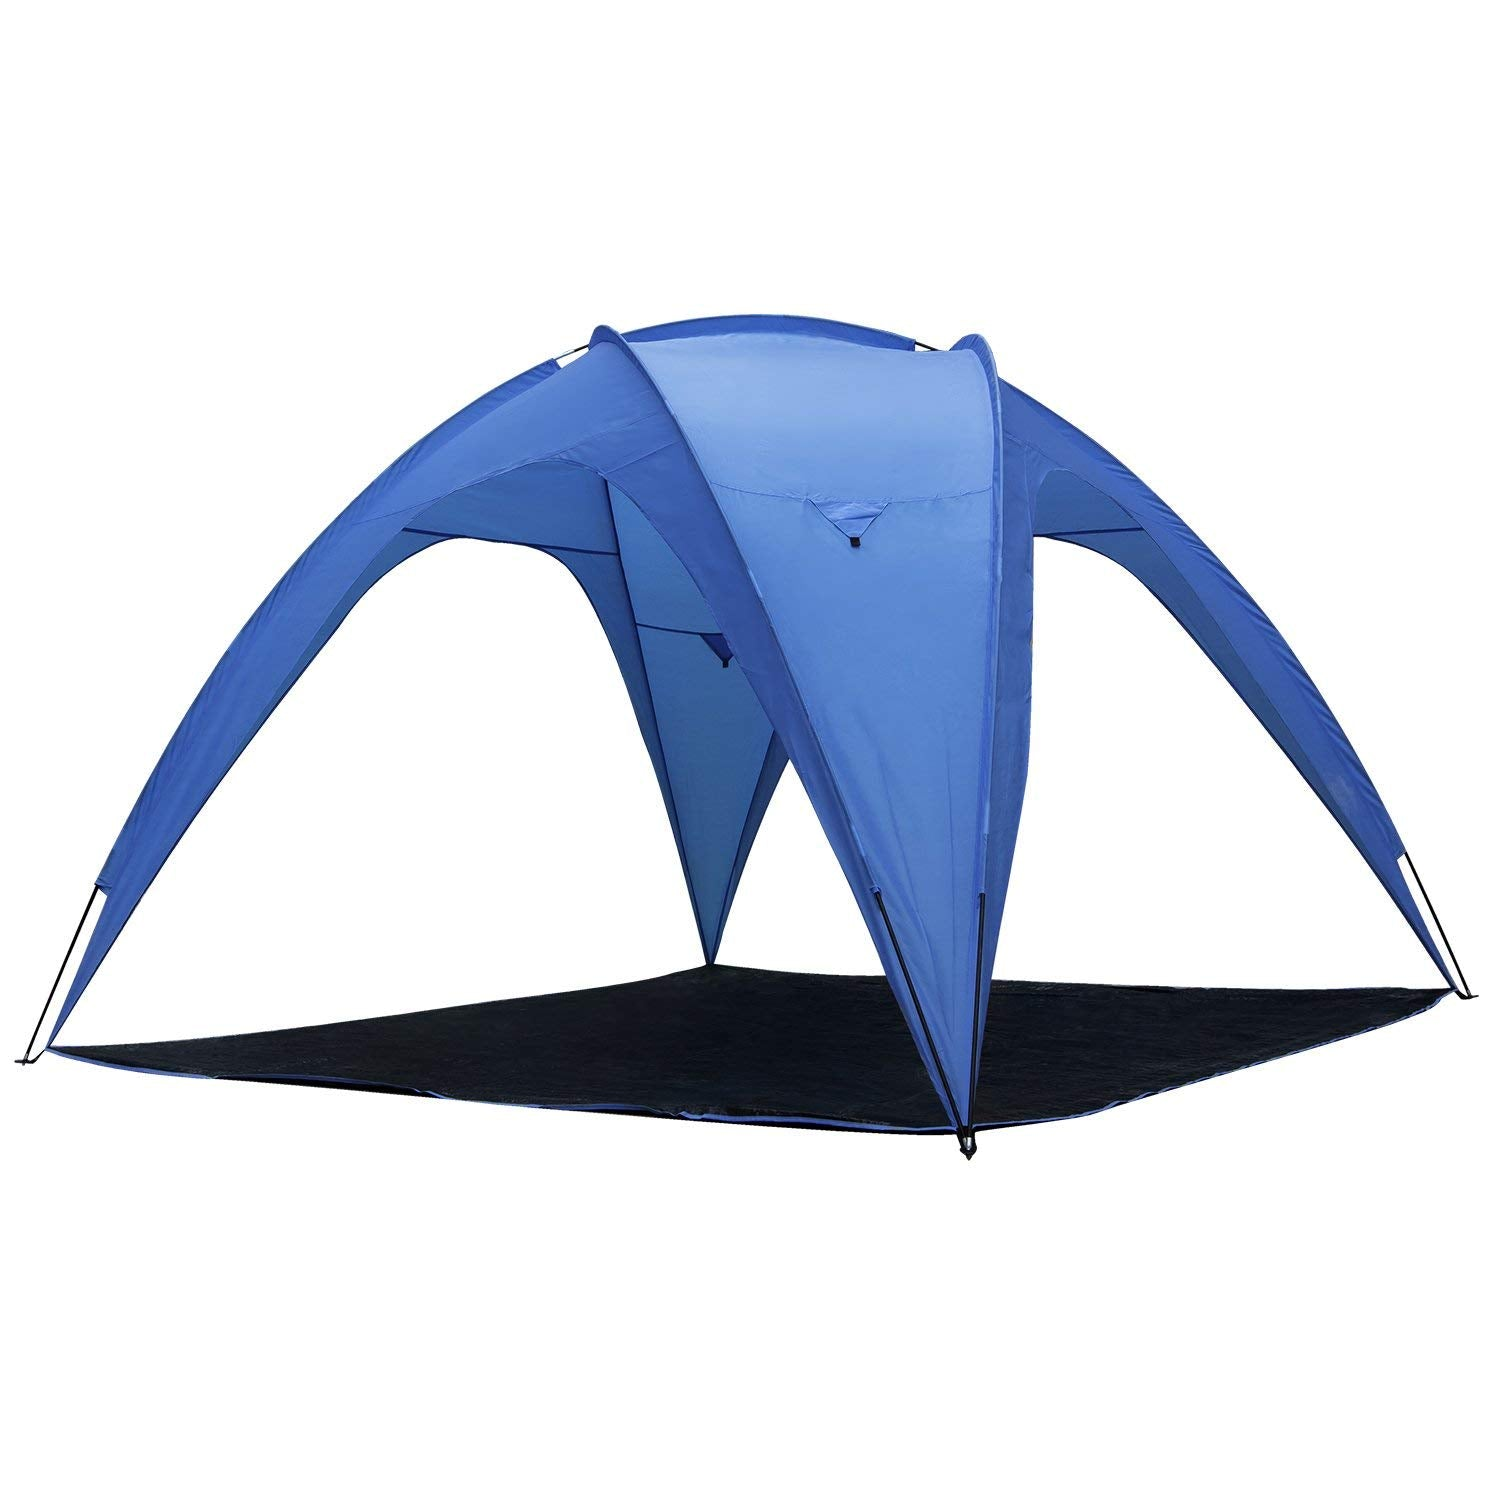 Thermalabs Jupiter Beach Tent Sun Shelter UV Protection   Portable Sunshade  Canopy Shade For Outdoor Camping Patio Party, Family, Baby, Girls For 8  People